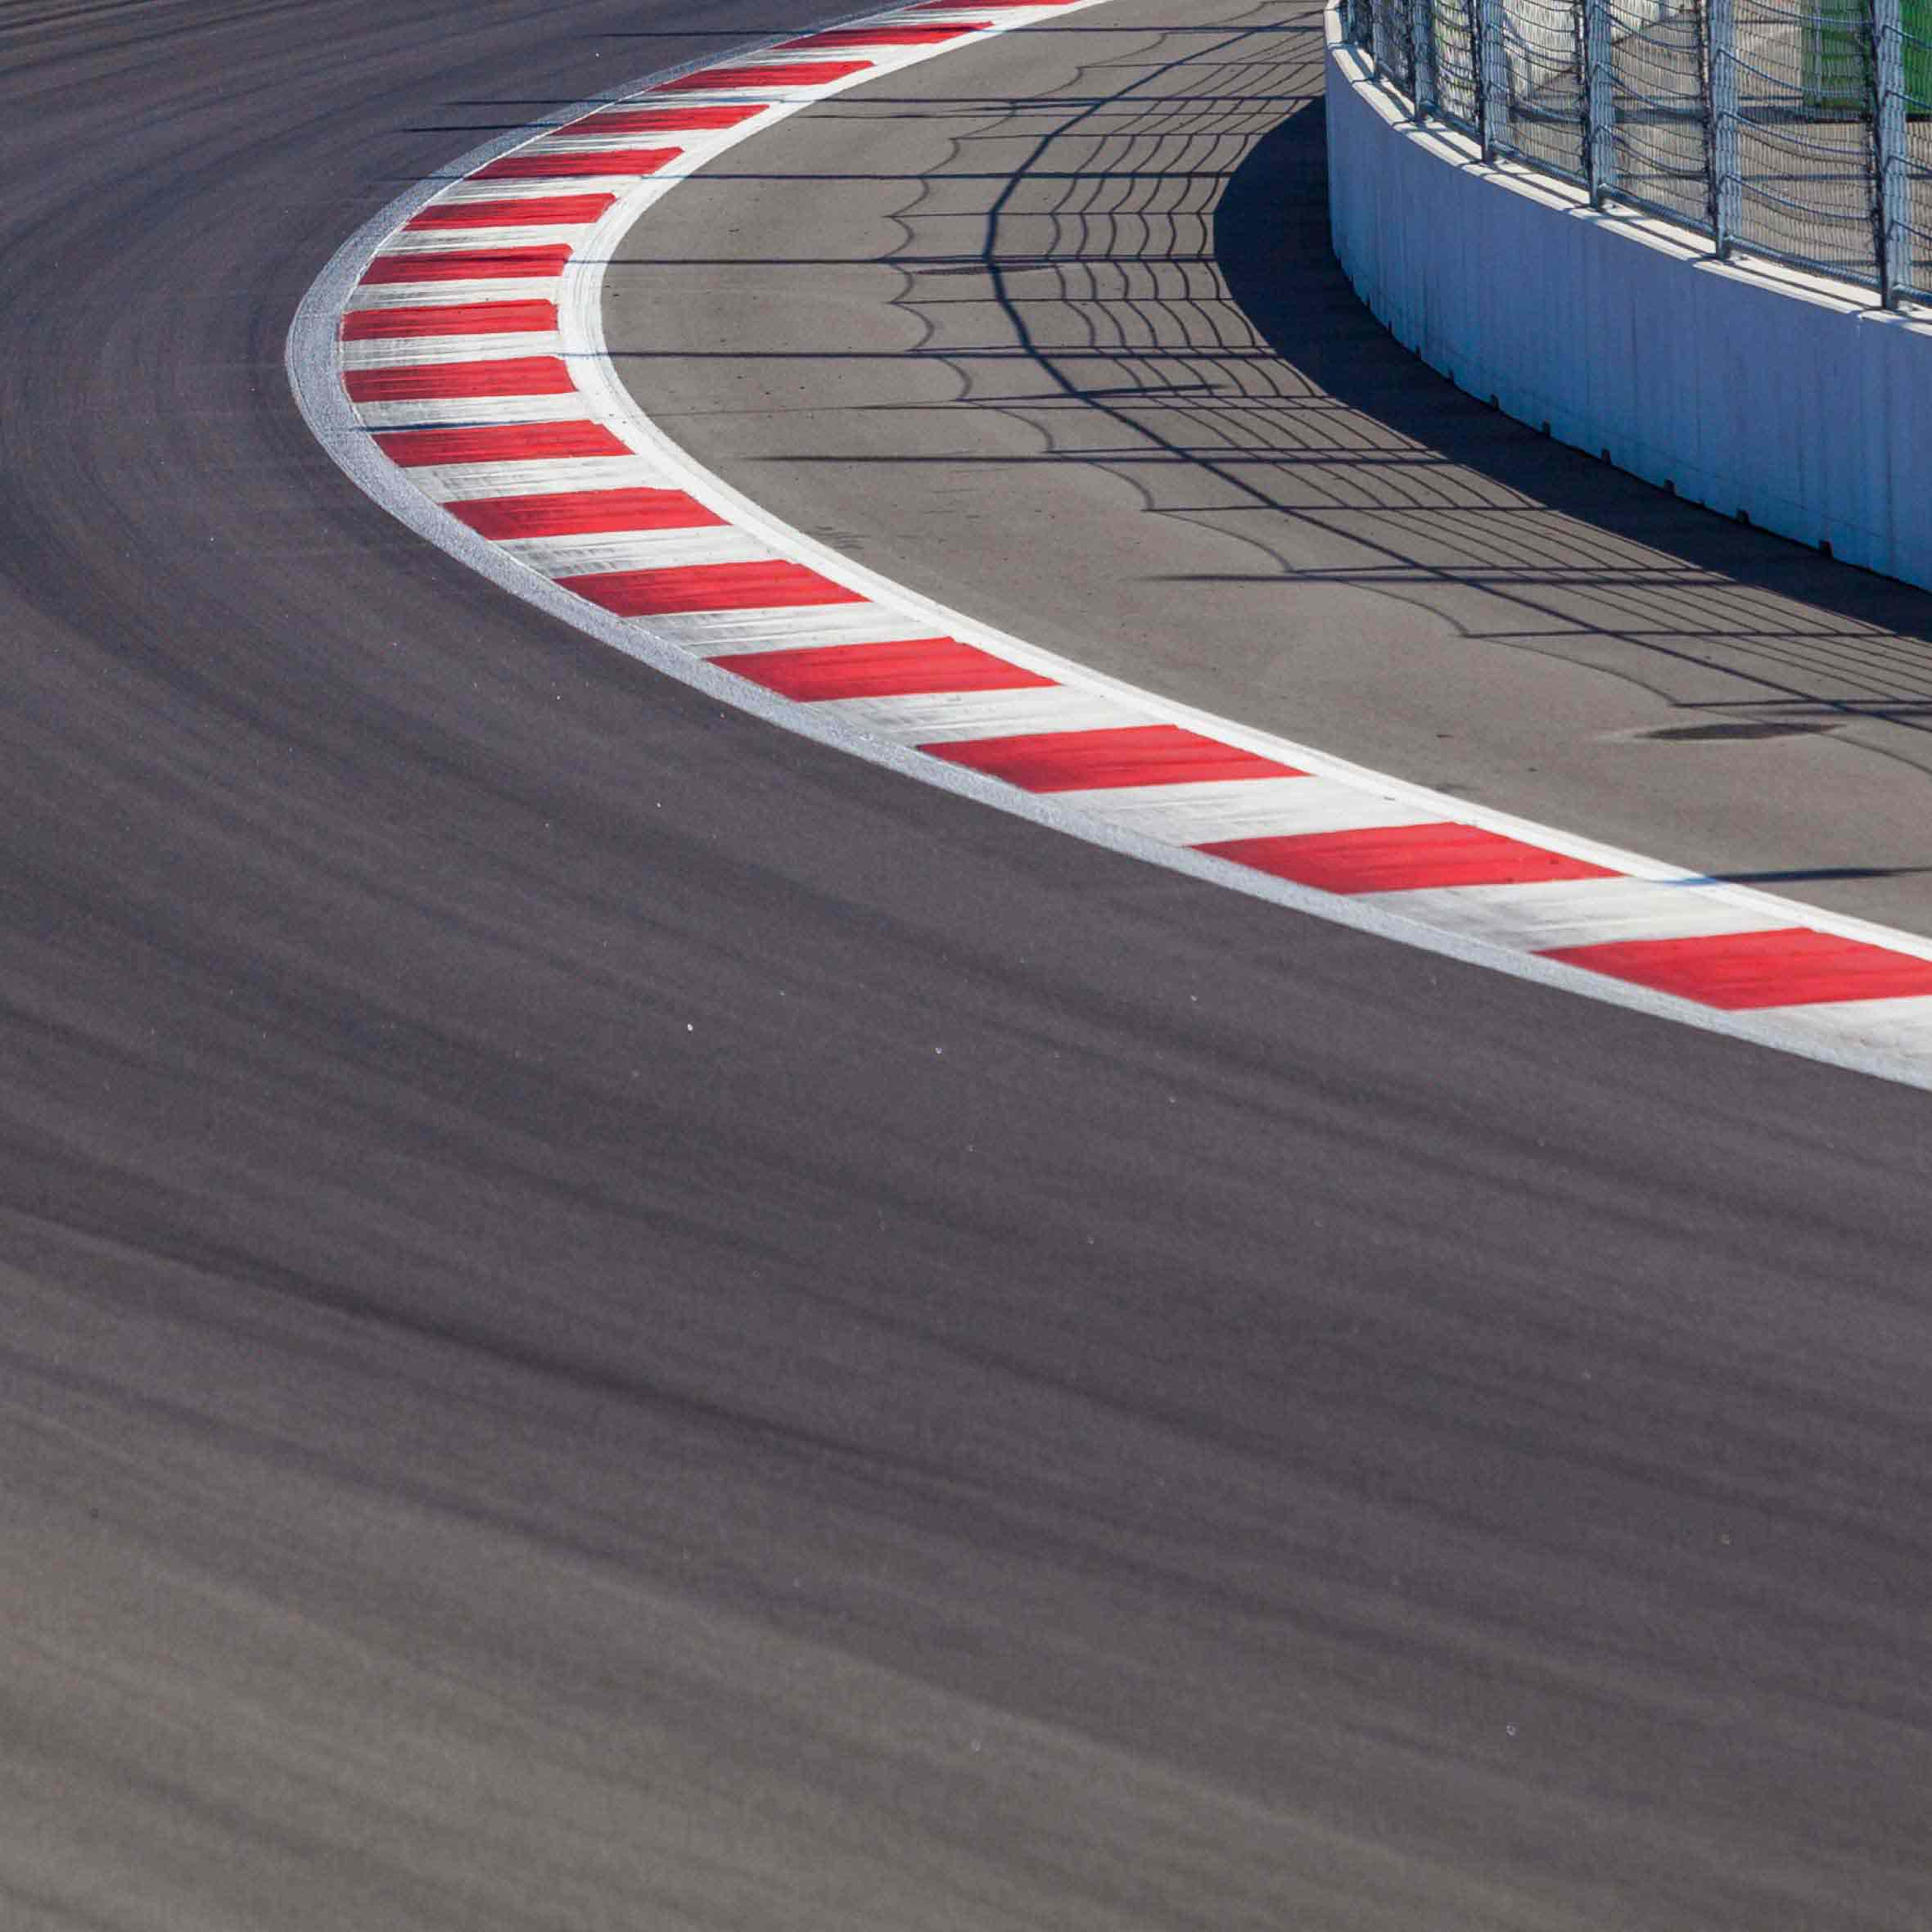 An empty racetrack is similar to those that the customers of Speedway Motors use to race their cars